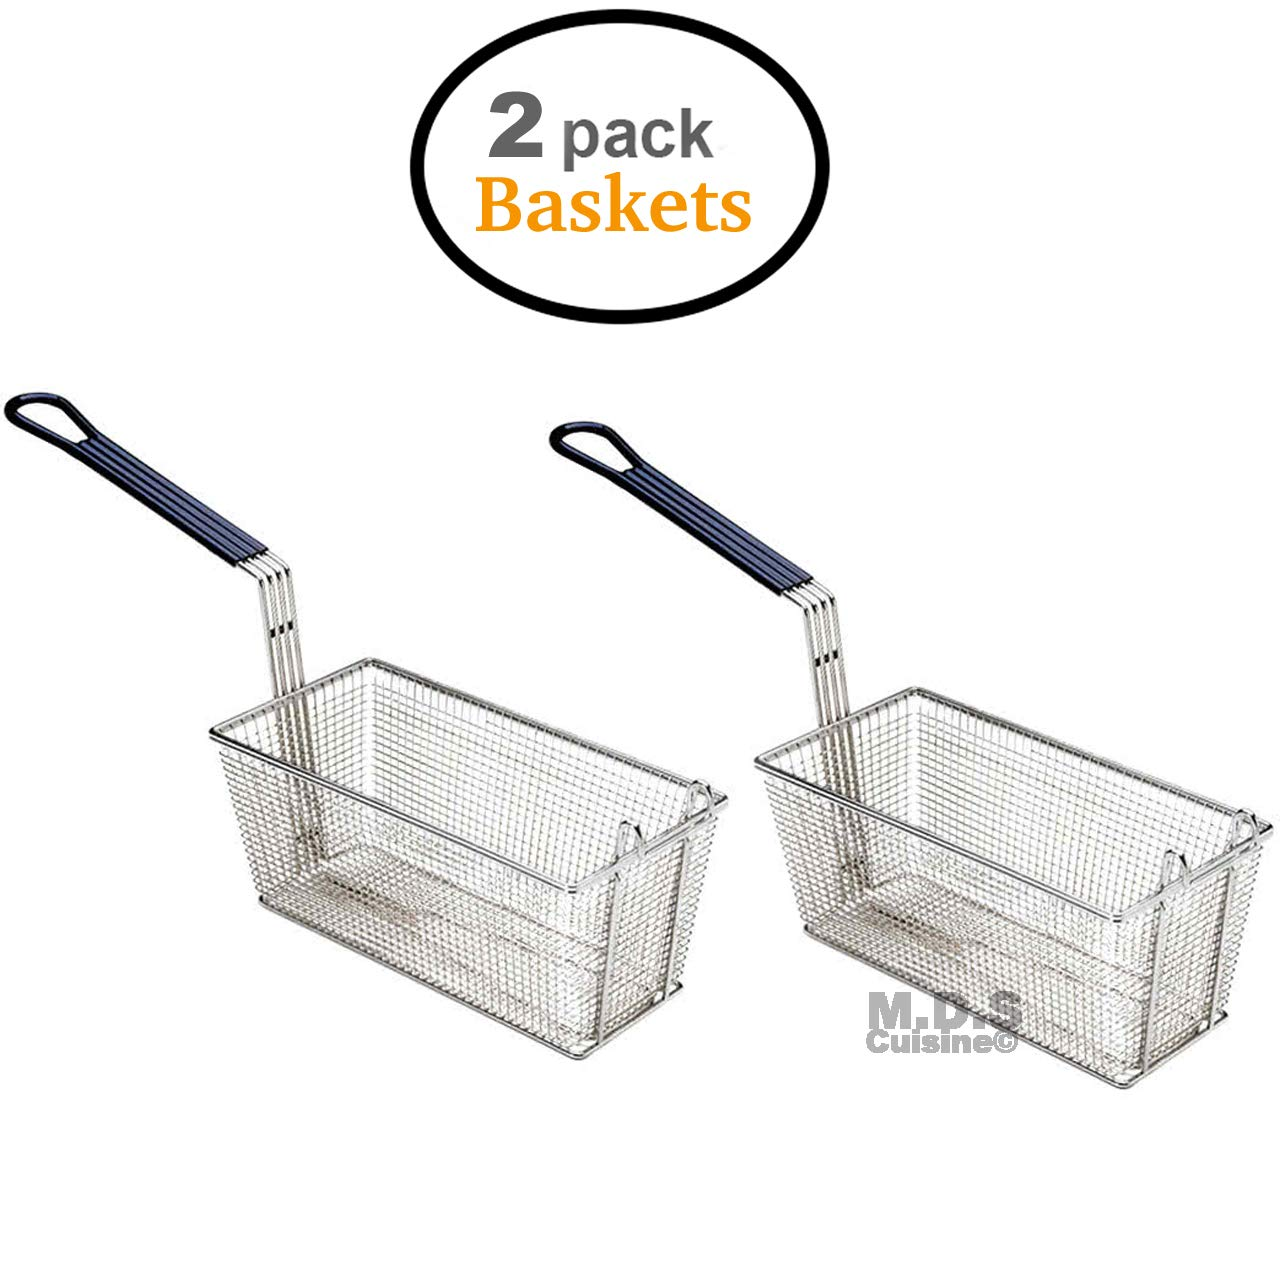 Baskets Frying 2 Deep Fryer Commercial Heavy Duty Stainless Steel Wired 13''L x 6.5''W x 6''H